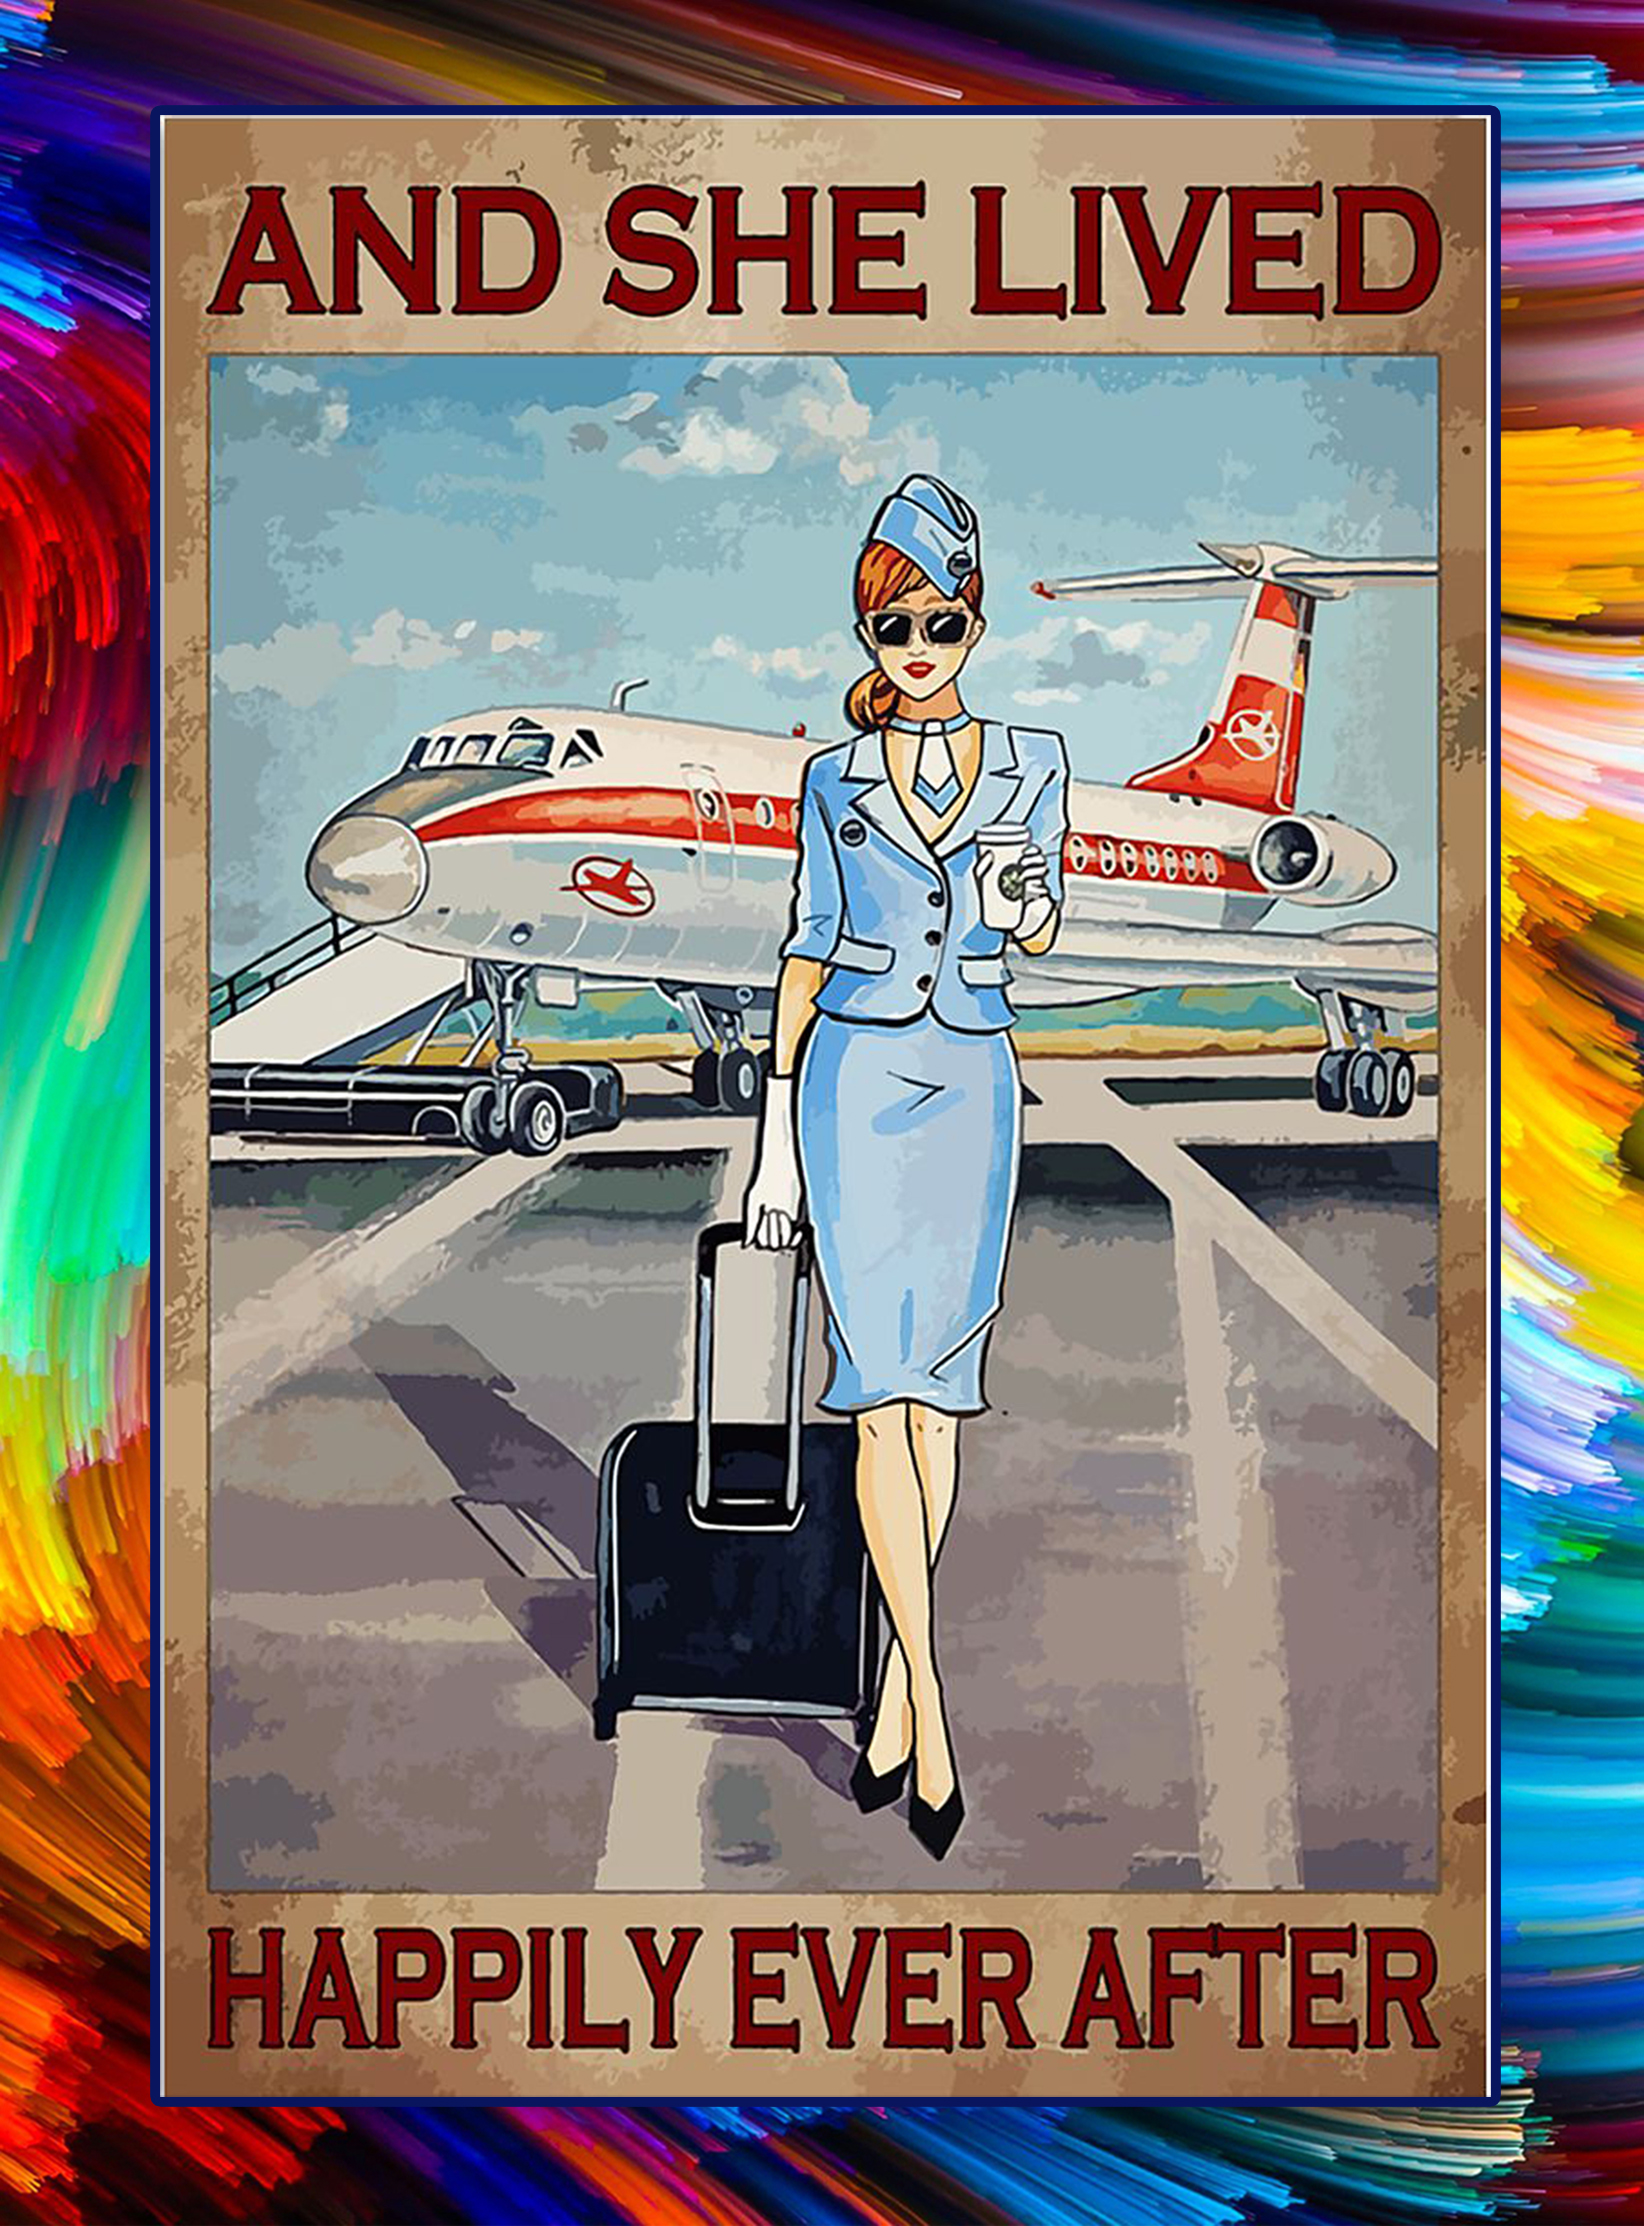 FLIGHT ATTENDANT And she lived happily ever after poster - A1